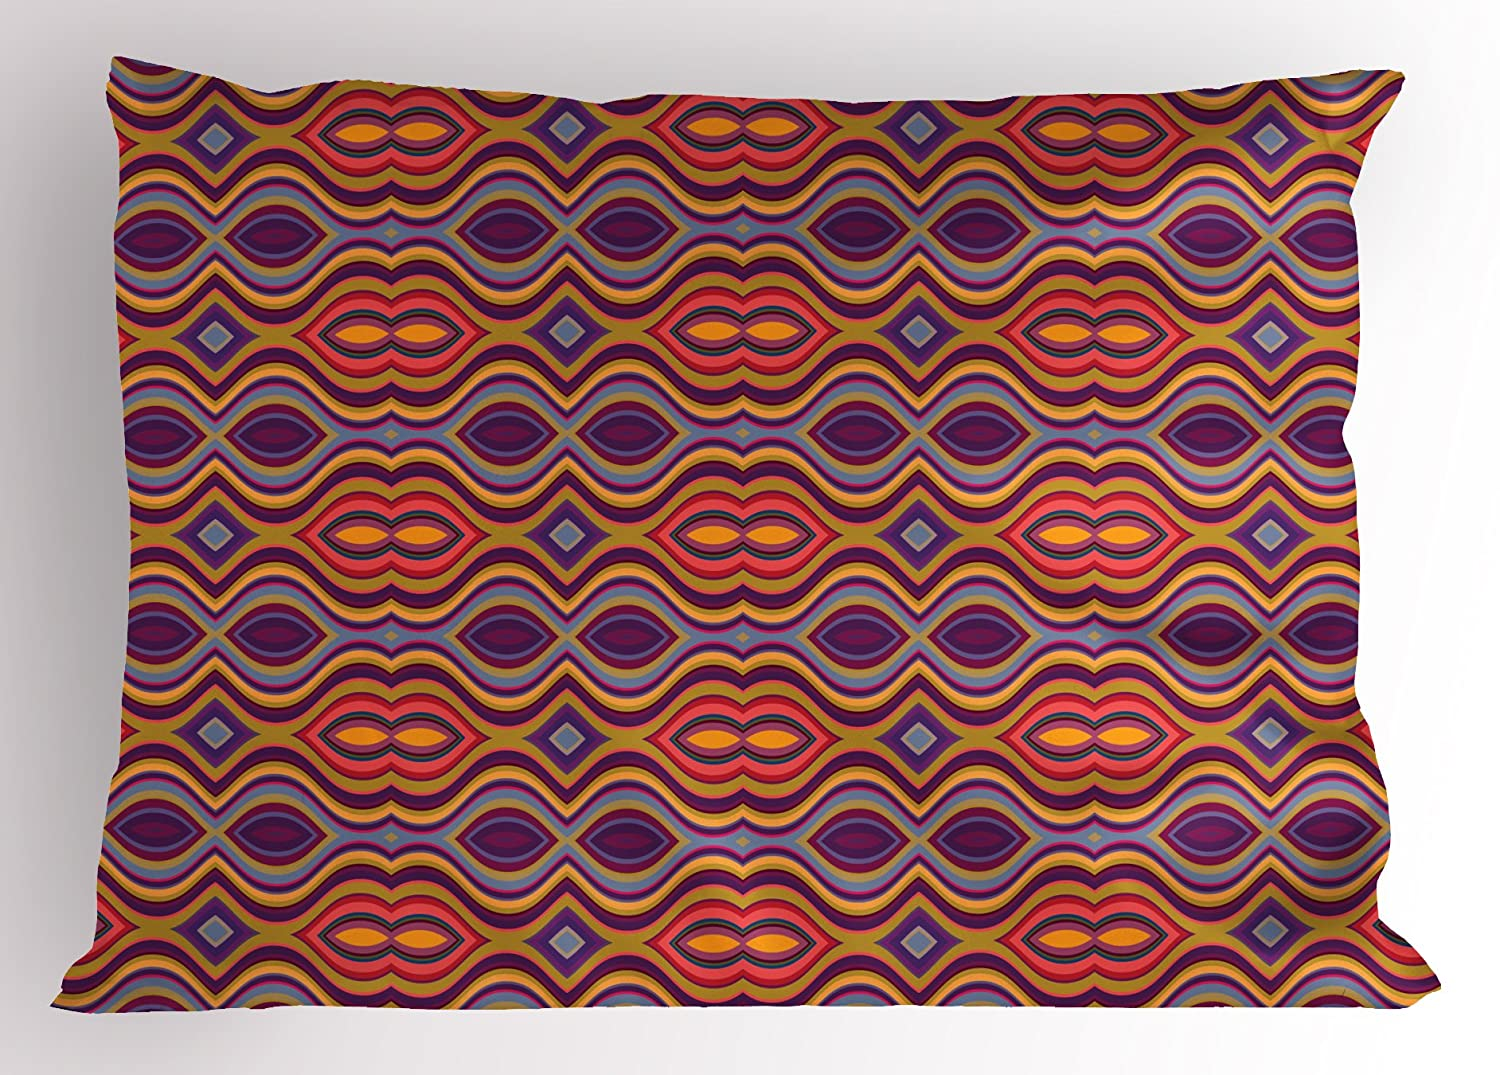 Psychedelic sham by ambesonne colorato curvy forma ovale trippy